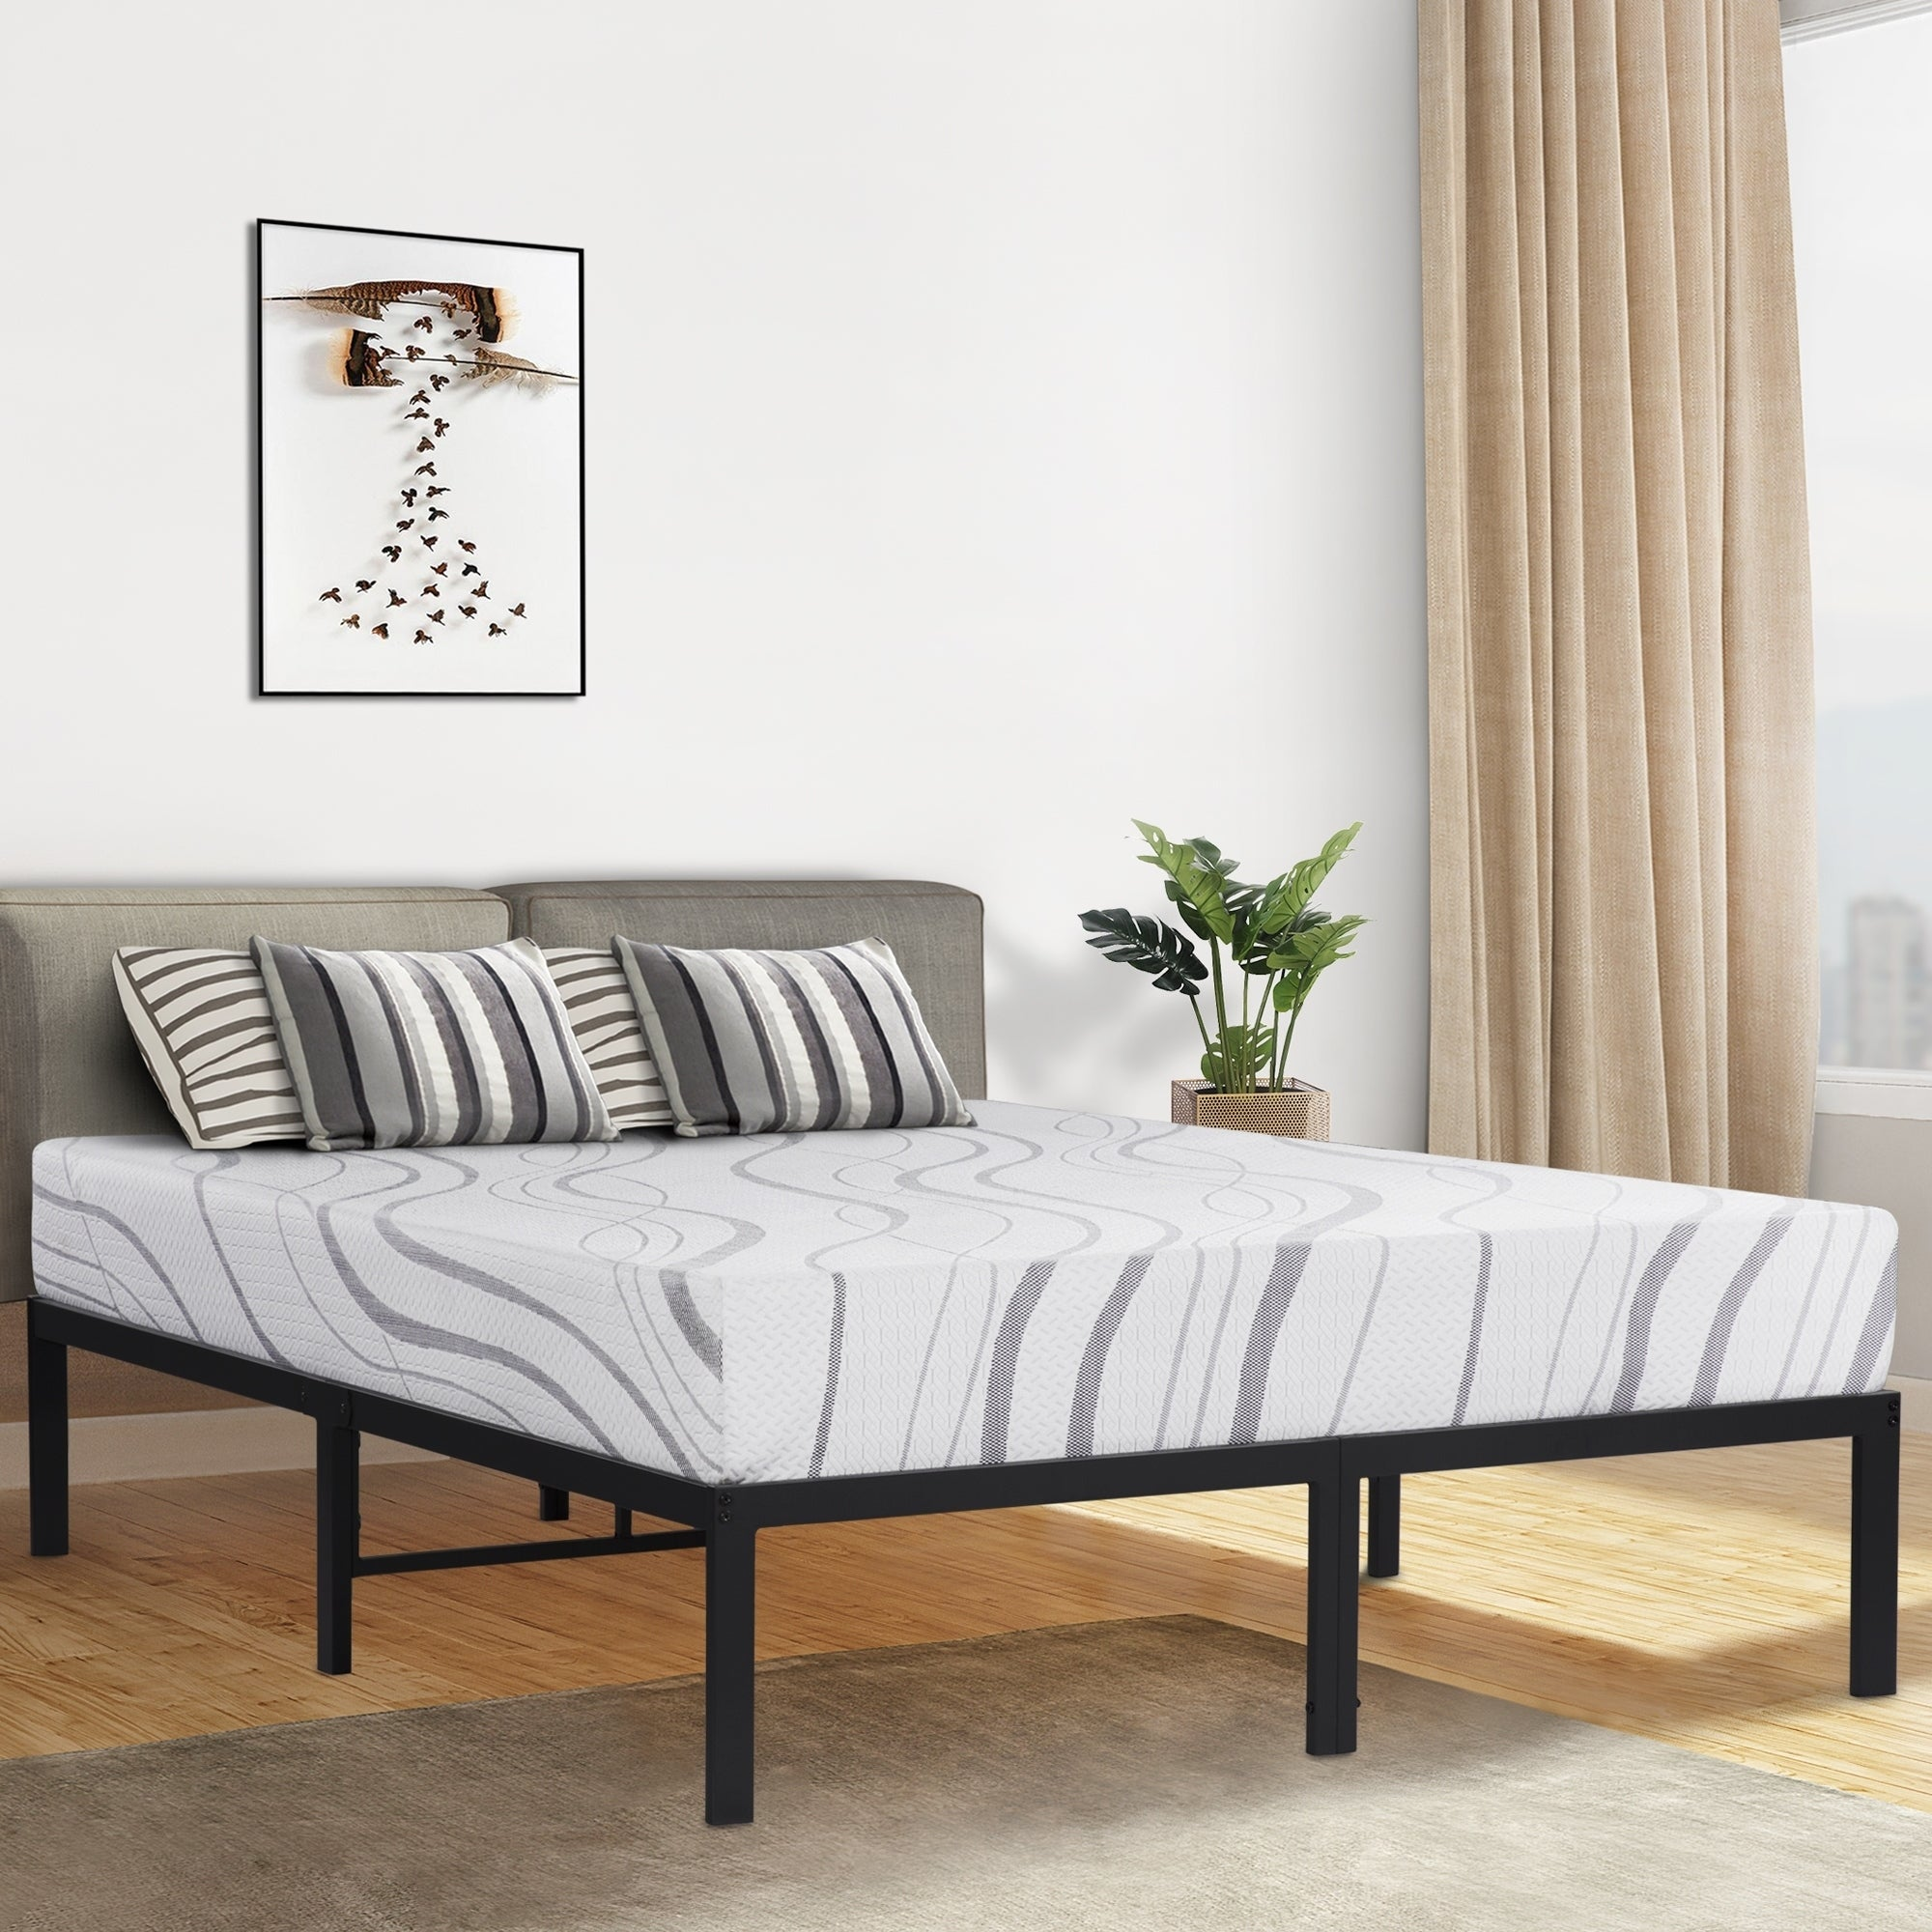 classic fit 84592 f01a9 Sleeplanner 14-inch King-Size Dura Steel Slat Bed Frame OVT-2000